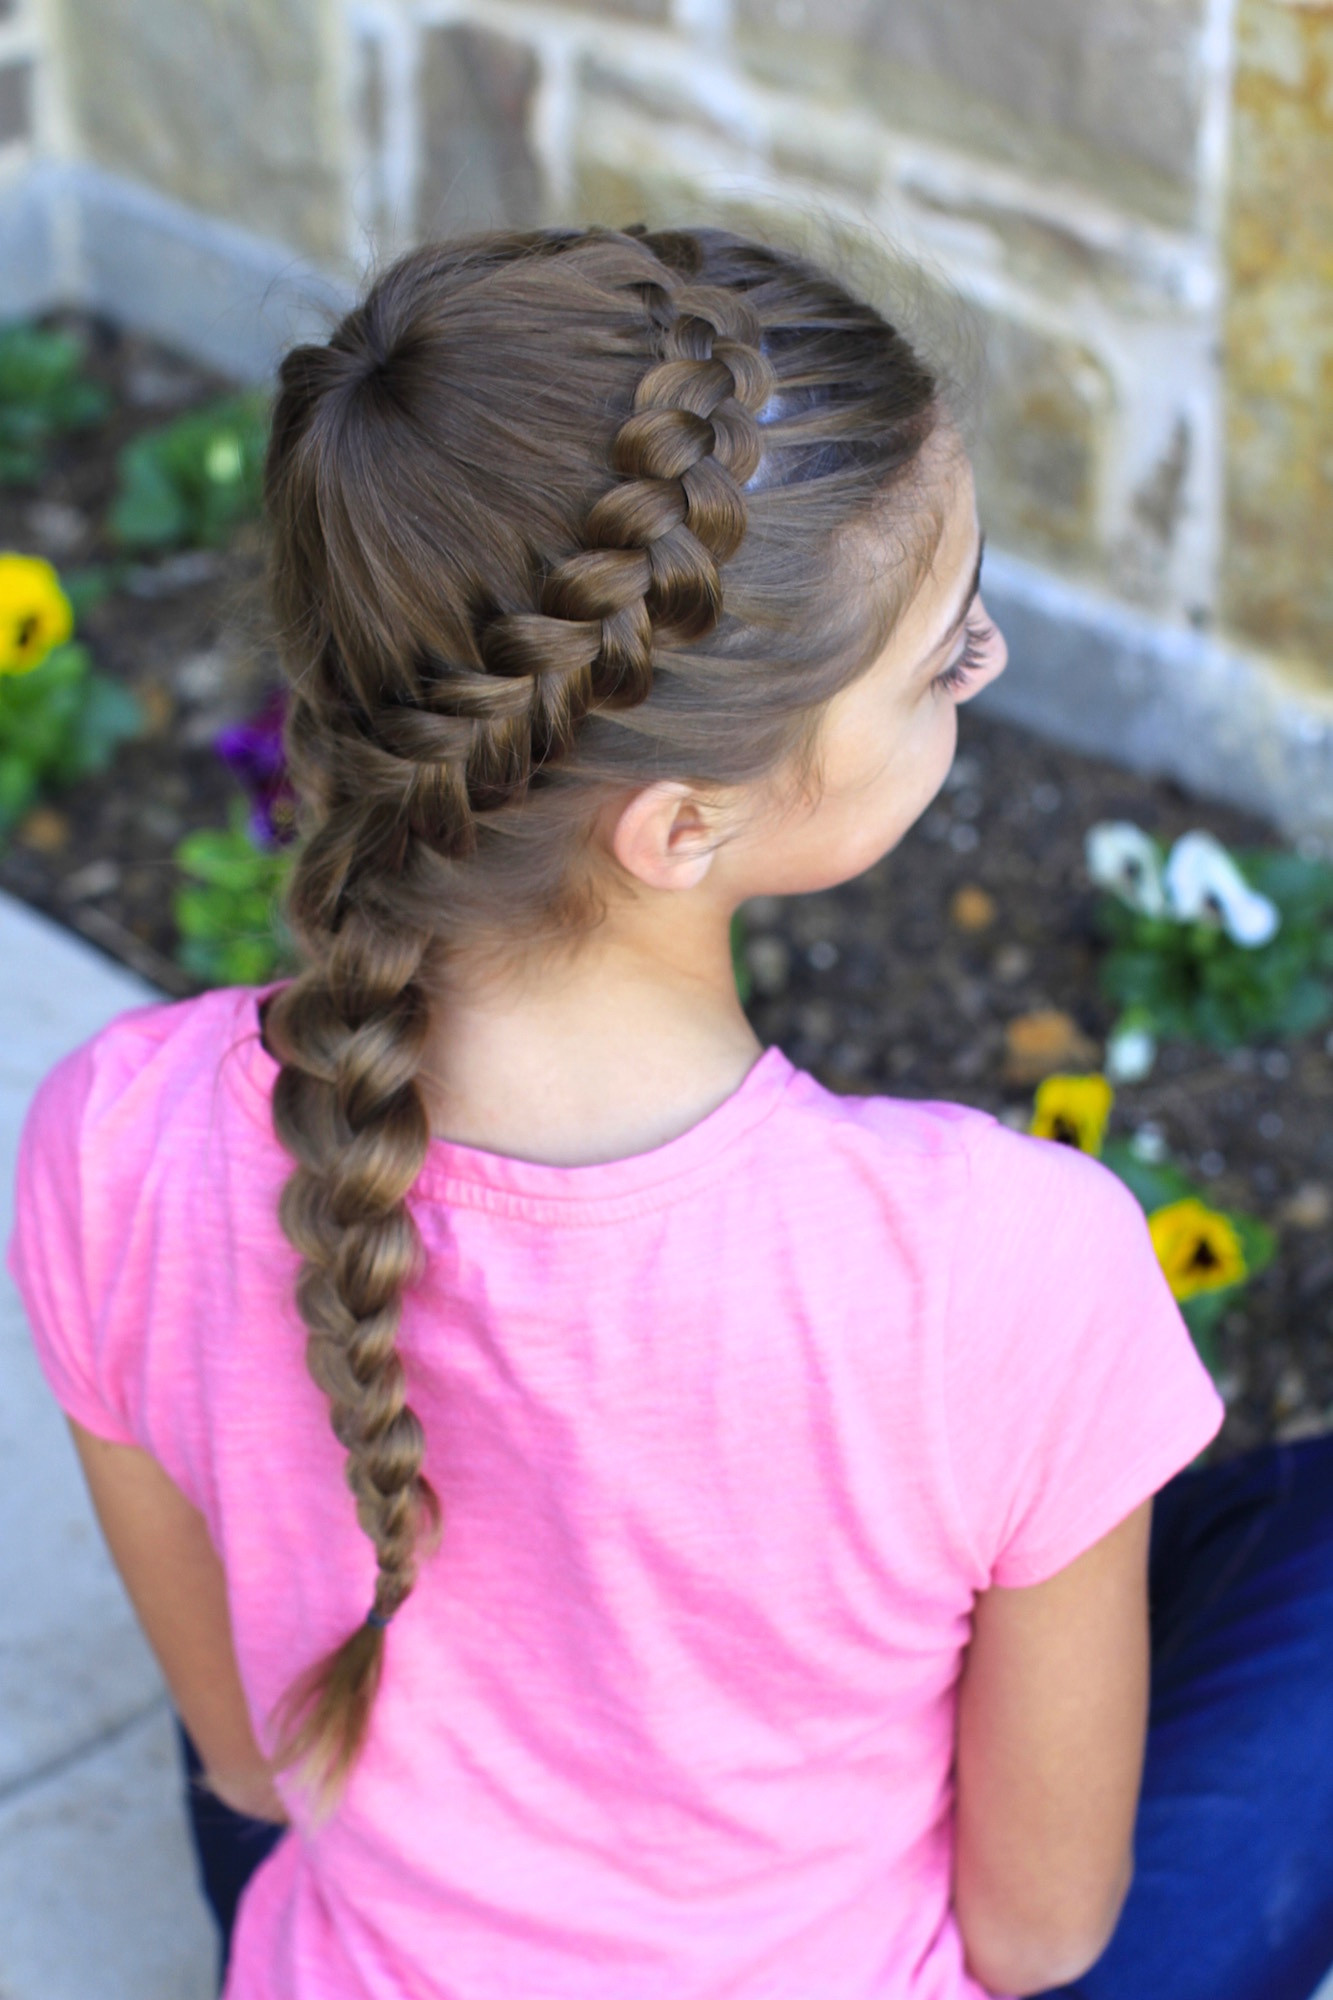 Best ideas about Dutch Braid Hairstyles . Save or Pin How to Create a Dutch Starburst Braid Now.